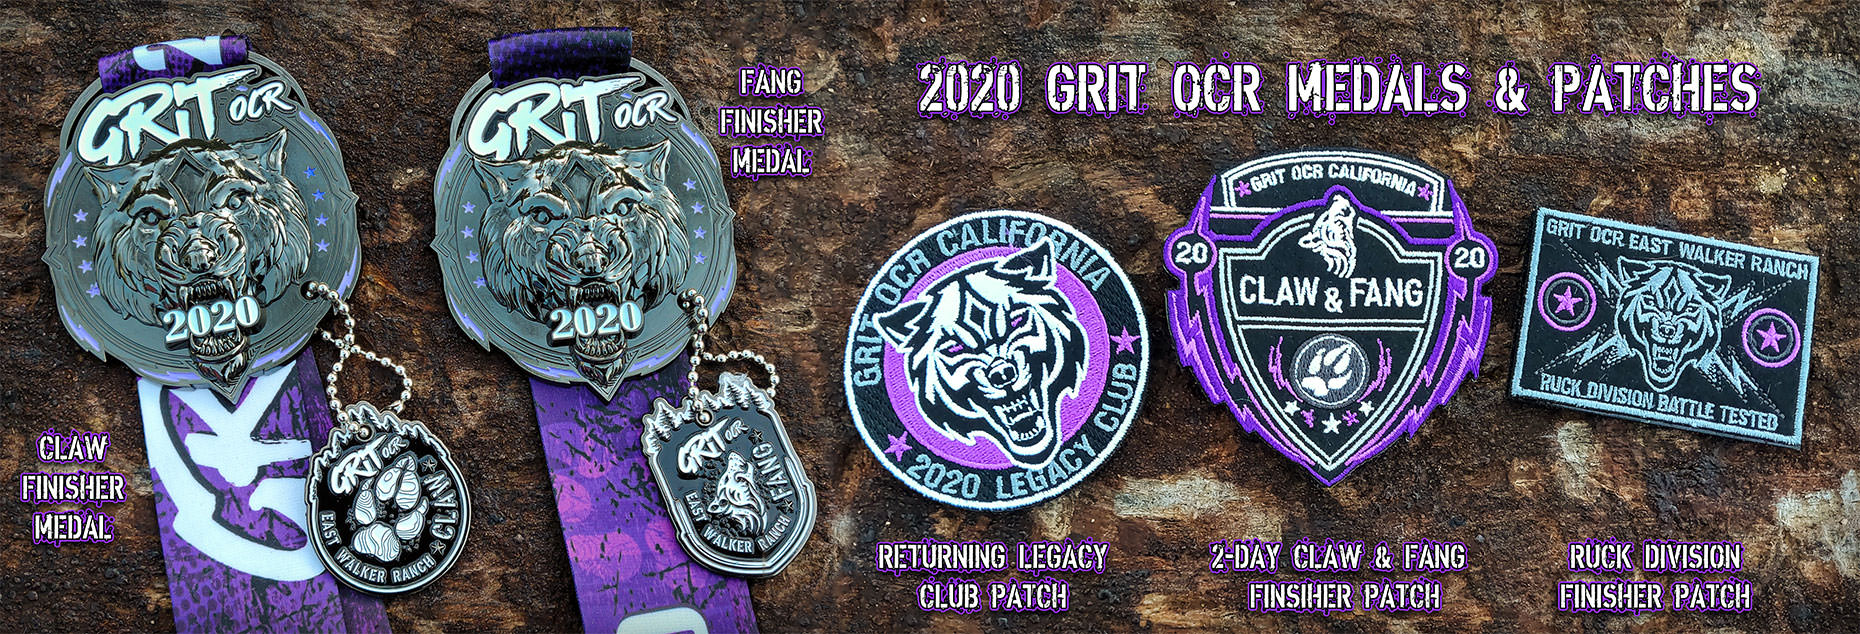 2020 Medals & Patches